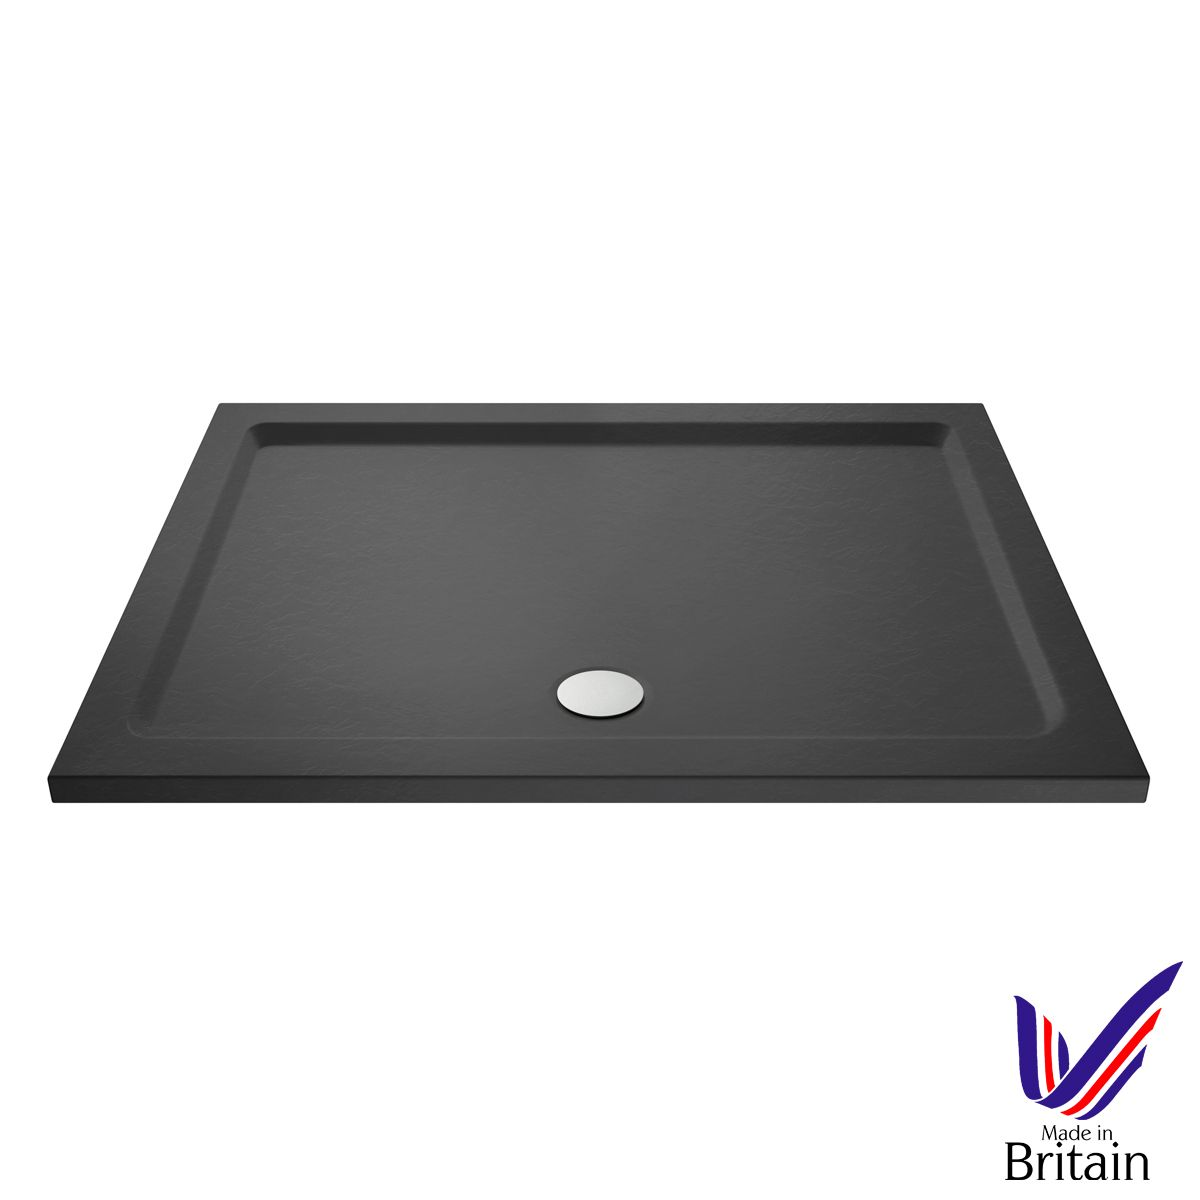 1400 x 900 Shower Tray Slate Grey Rectangular Low Profile by Pearlstone